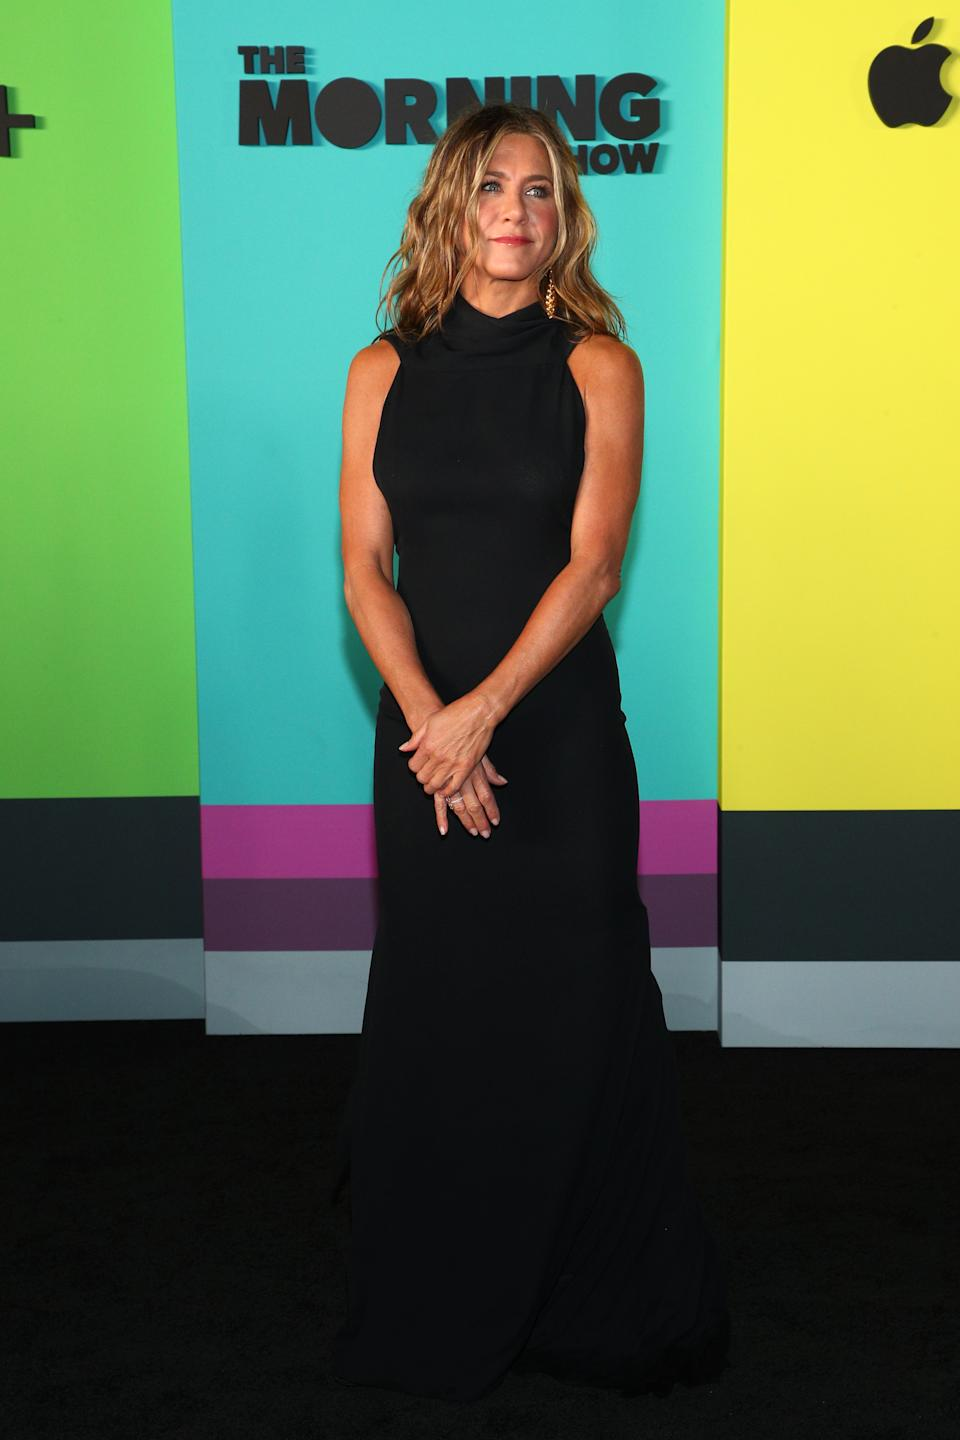 """NEW YORK, NEW YORK - OCTOBER 28: Jennifer Anistonattends Apple TV+'s """"The Morning Show"""" World Premiere at David Geffen Hall on October 28, 2019 in New York City. (Photo by Astrid Stawiarz/Getty Images,)"""